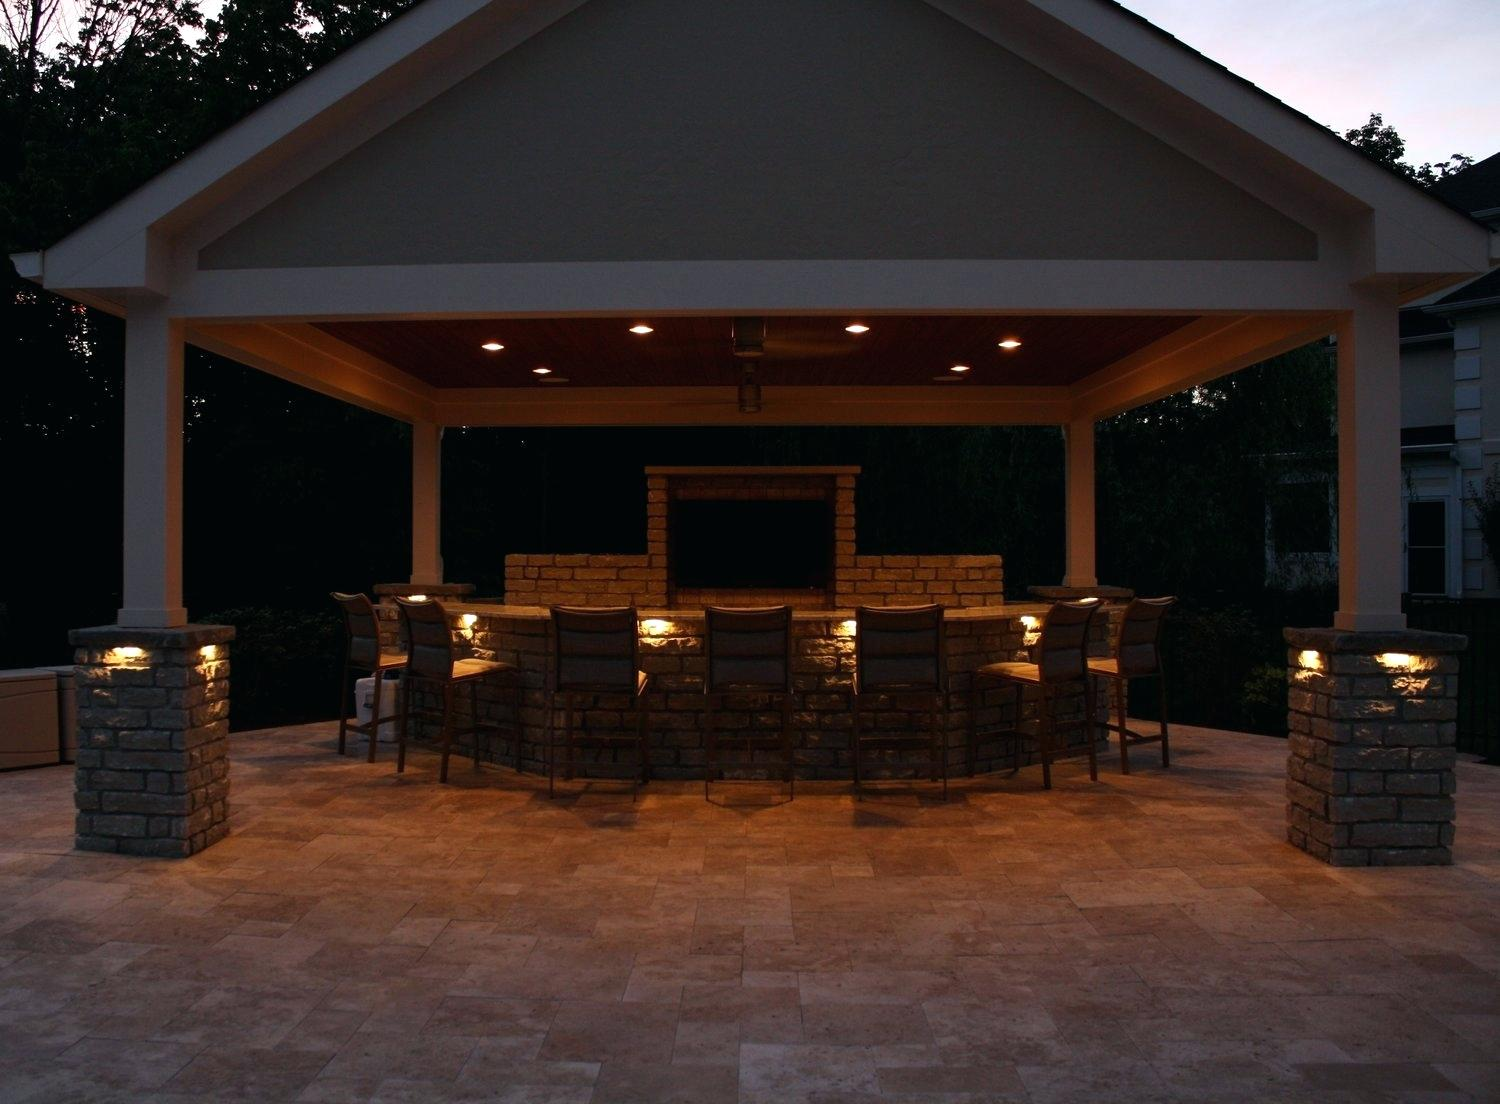 Accent lights-Sarasota FL Outdoor Lighting Installers-We Offer Outdoor Lighting Services, Landscape Lighting, Low Voltage Lighting, Outdoor LED landscape Lighting, Holiday Lighting, Christmas Lighting, Tree Lighting, Canopy Lighting, Residential outdoor Lighting, Commercial outdoor Lighting, Safety Lighting, Path and Garden Lighting, Mini lights and flood lights, Landscape Lighting installation, Outdoor spot lights, Outdoor LED garden Lighting, Dock Lighting, Accent lights, Deck and patio lights, Security lights, Underwater Lighting, Tree upLighting, Outdoor Lighting repair services, and more.